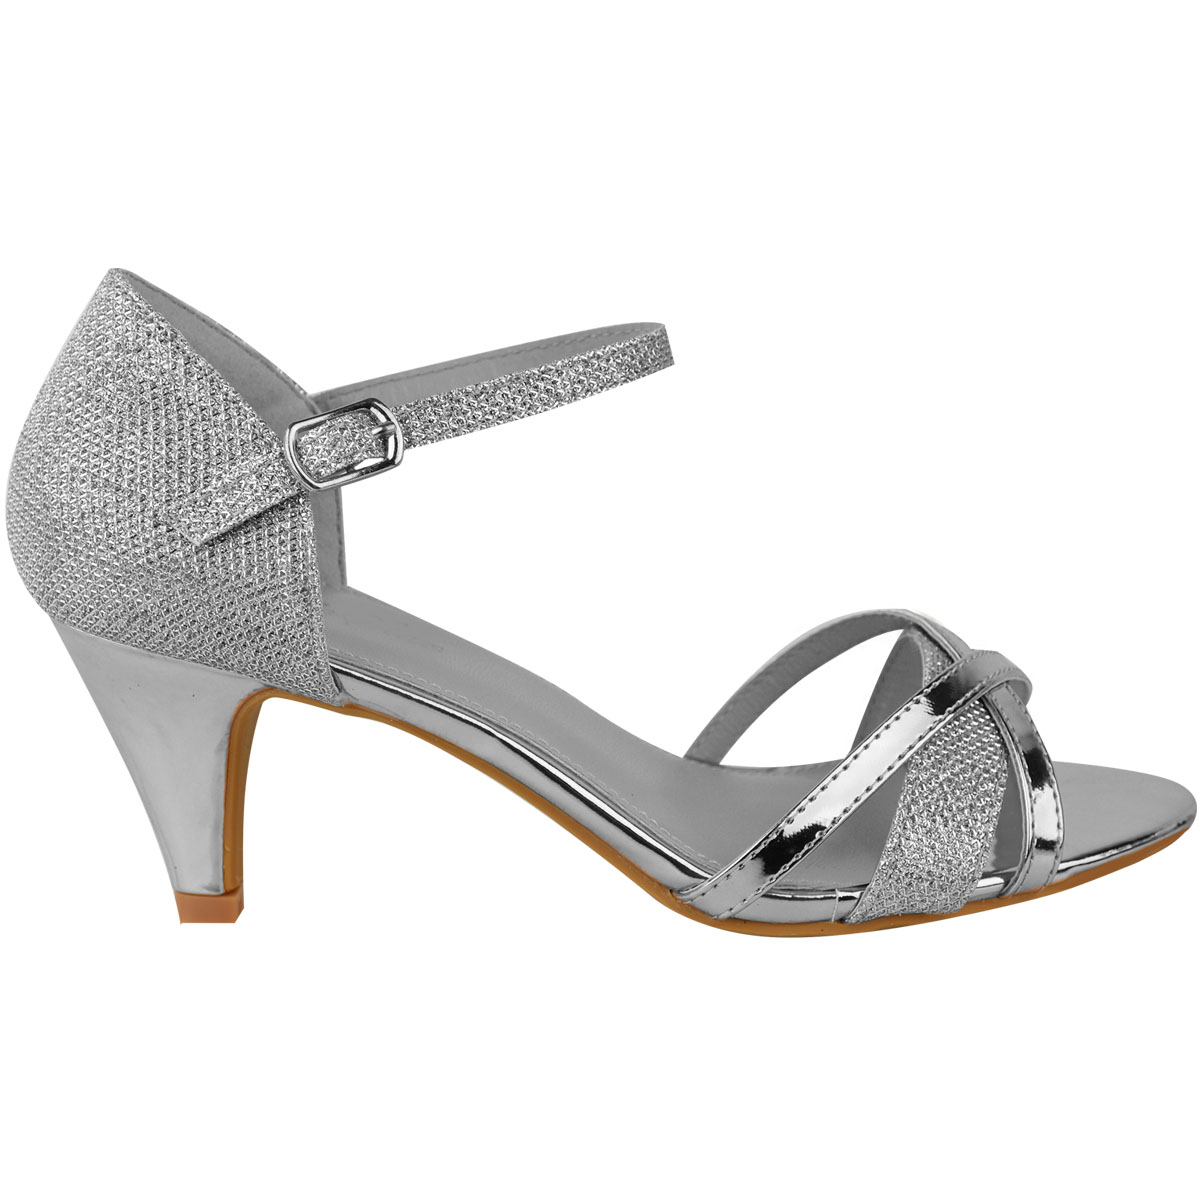 Details about Womens Ladies Low Heel Wedding Bridal Silver Sandals Party Strappy Shoes Open